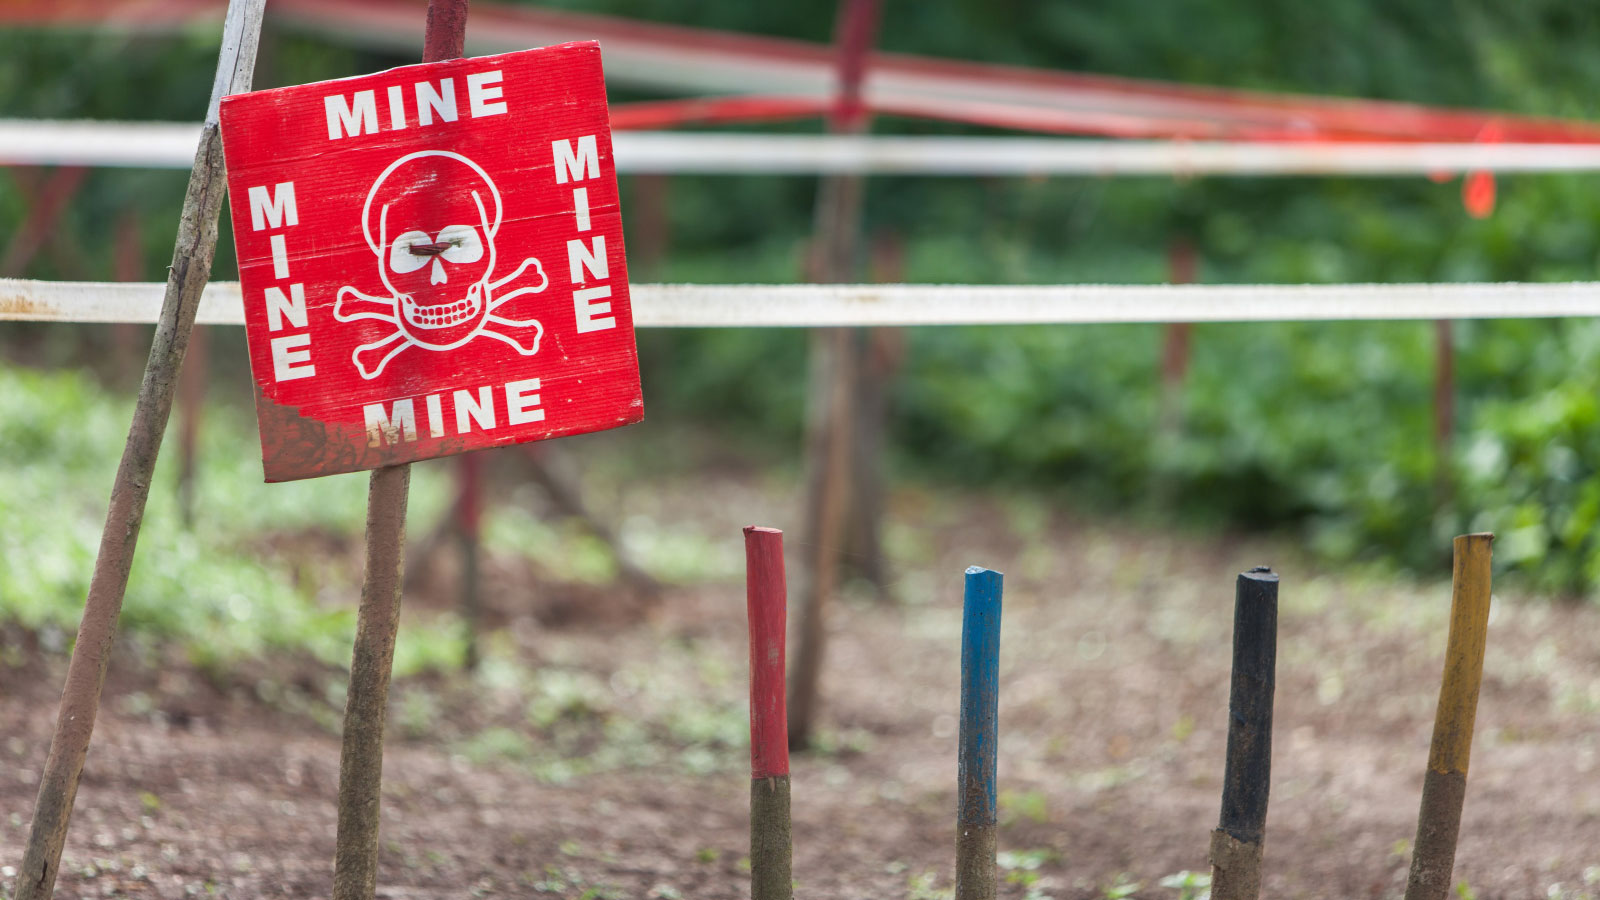 Innovation at HI | Demining drones: a mine clearance revolution?